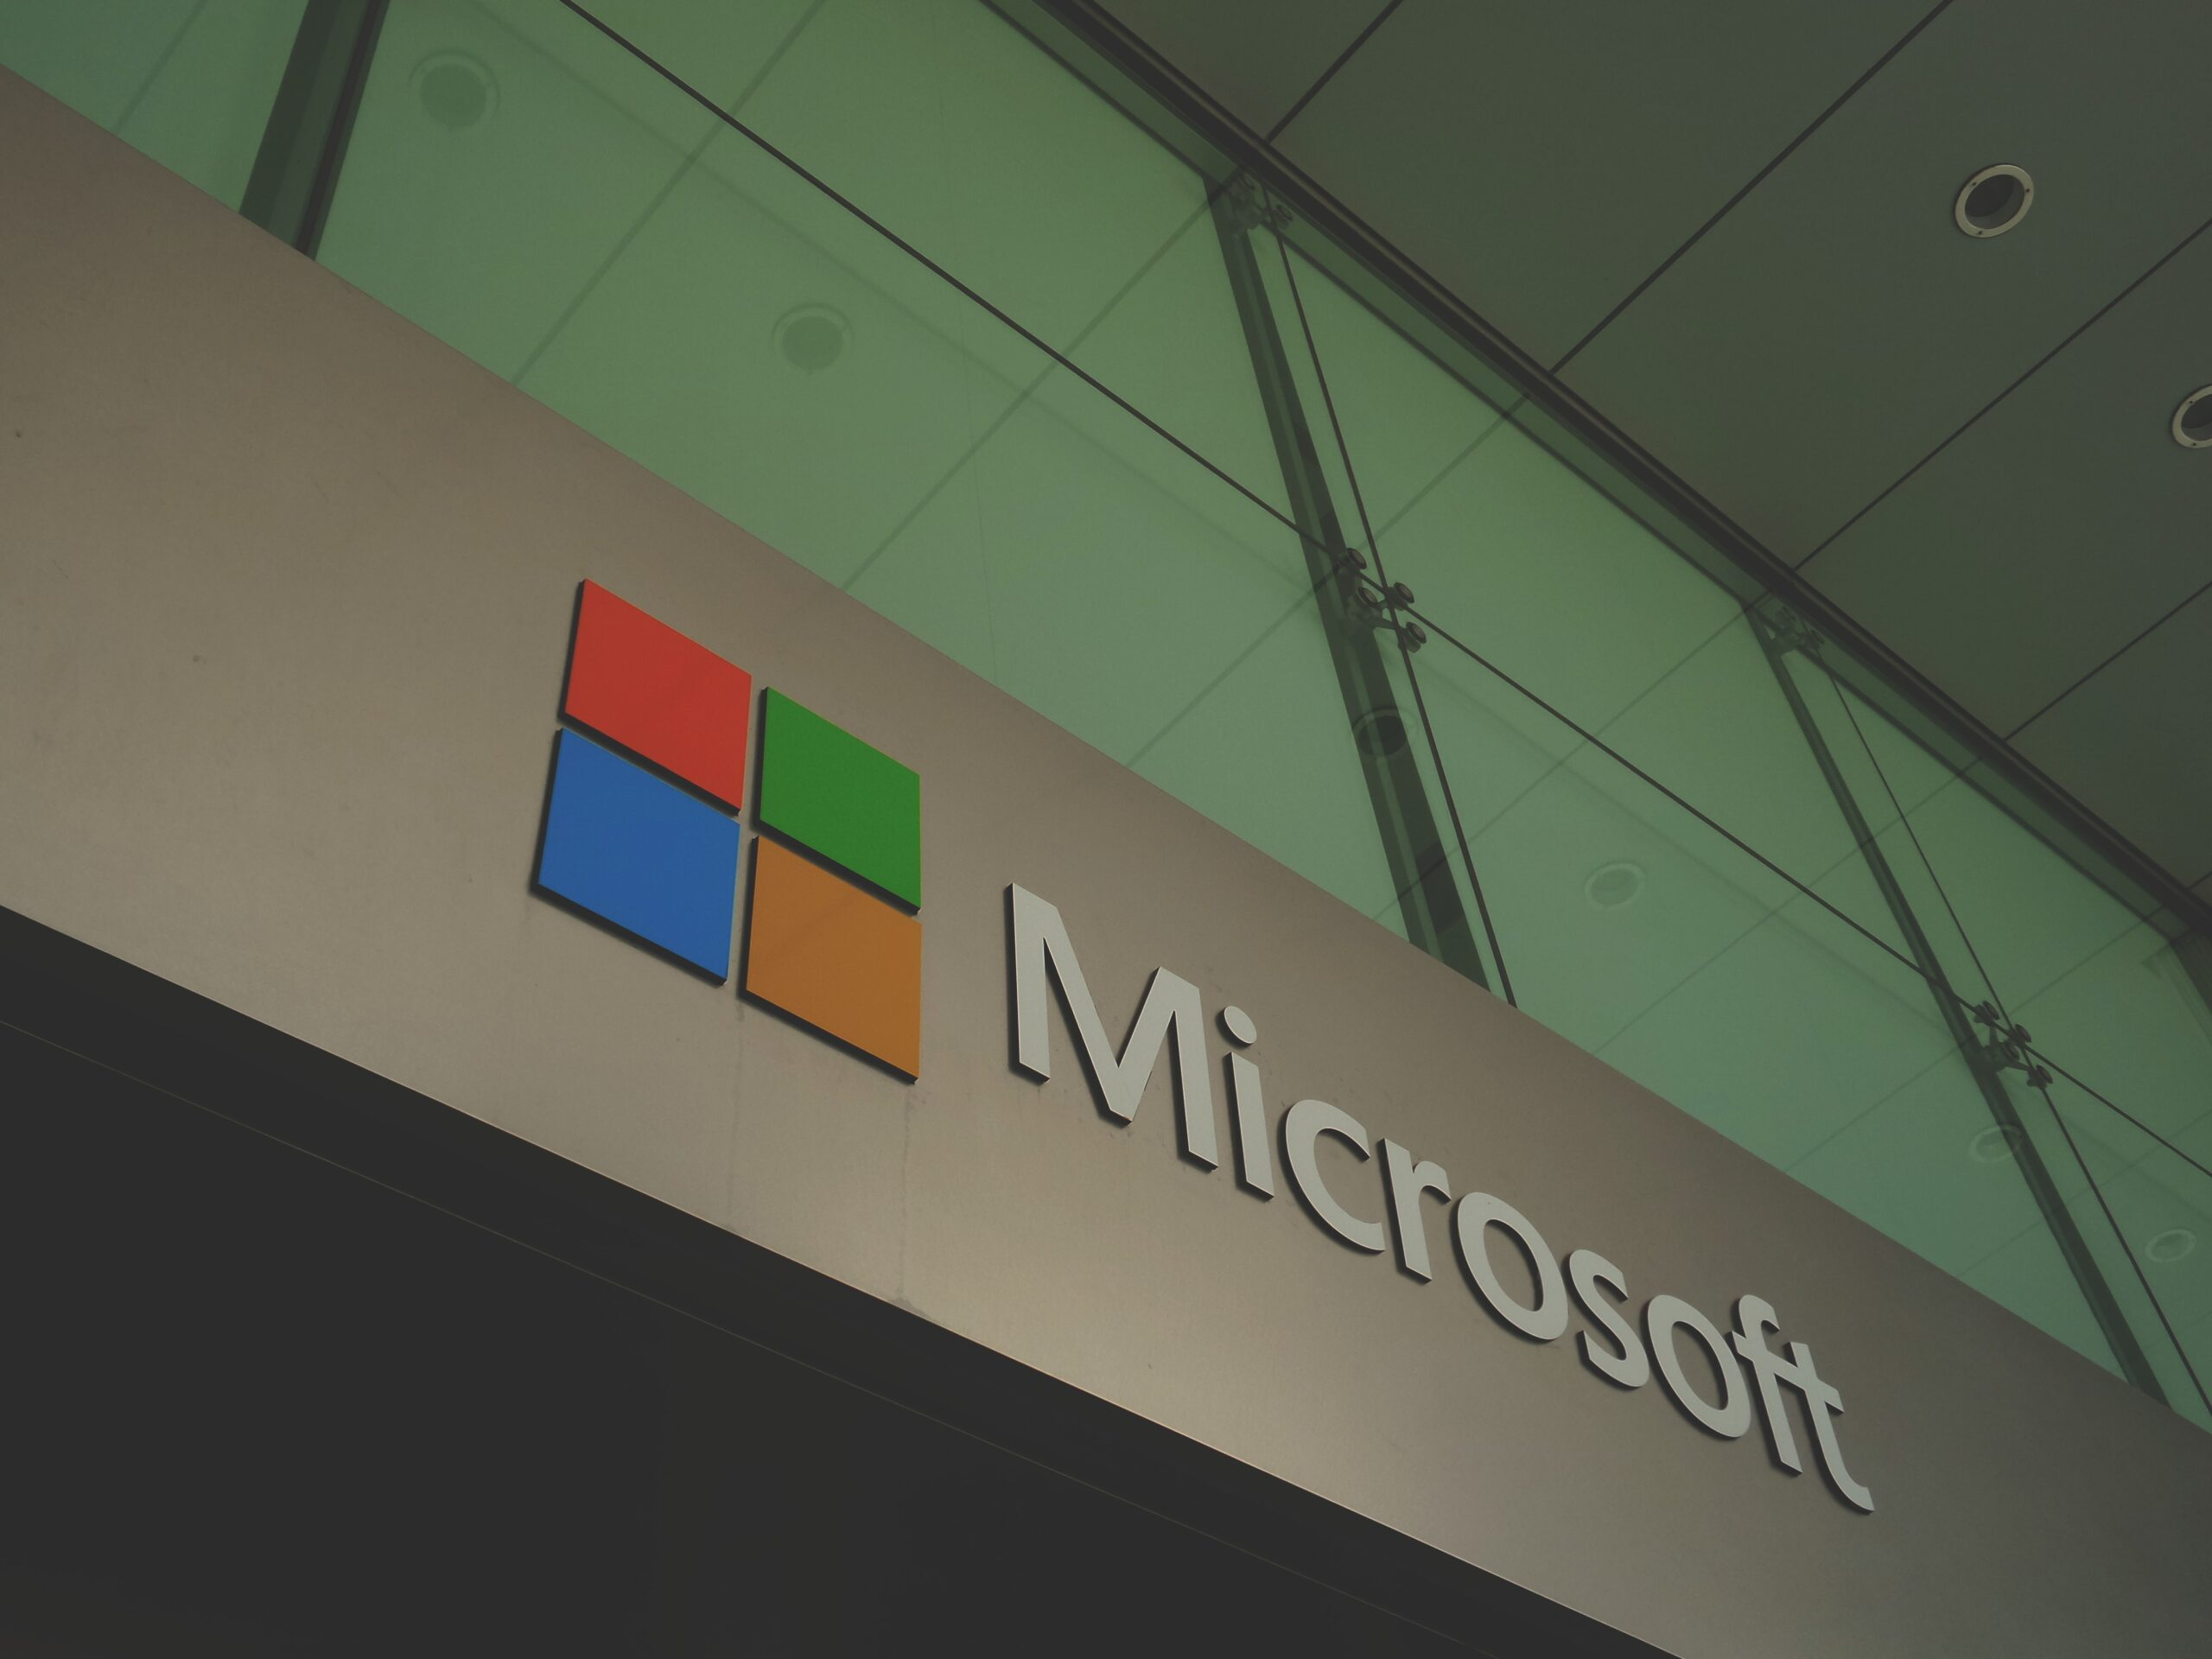 Microsoft closes all retail stores permanently